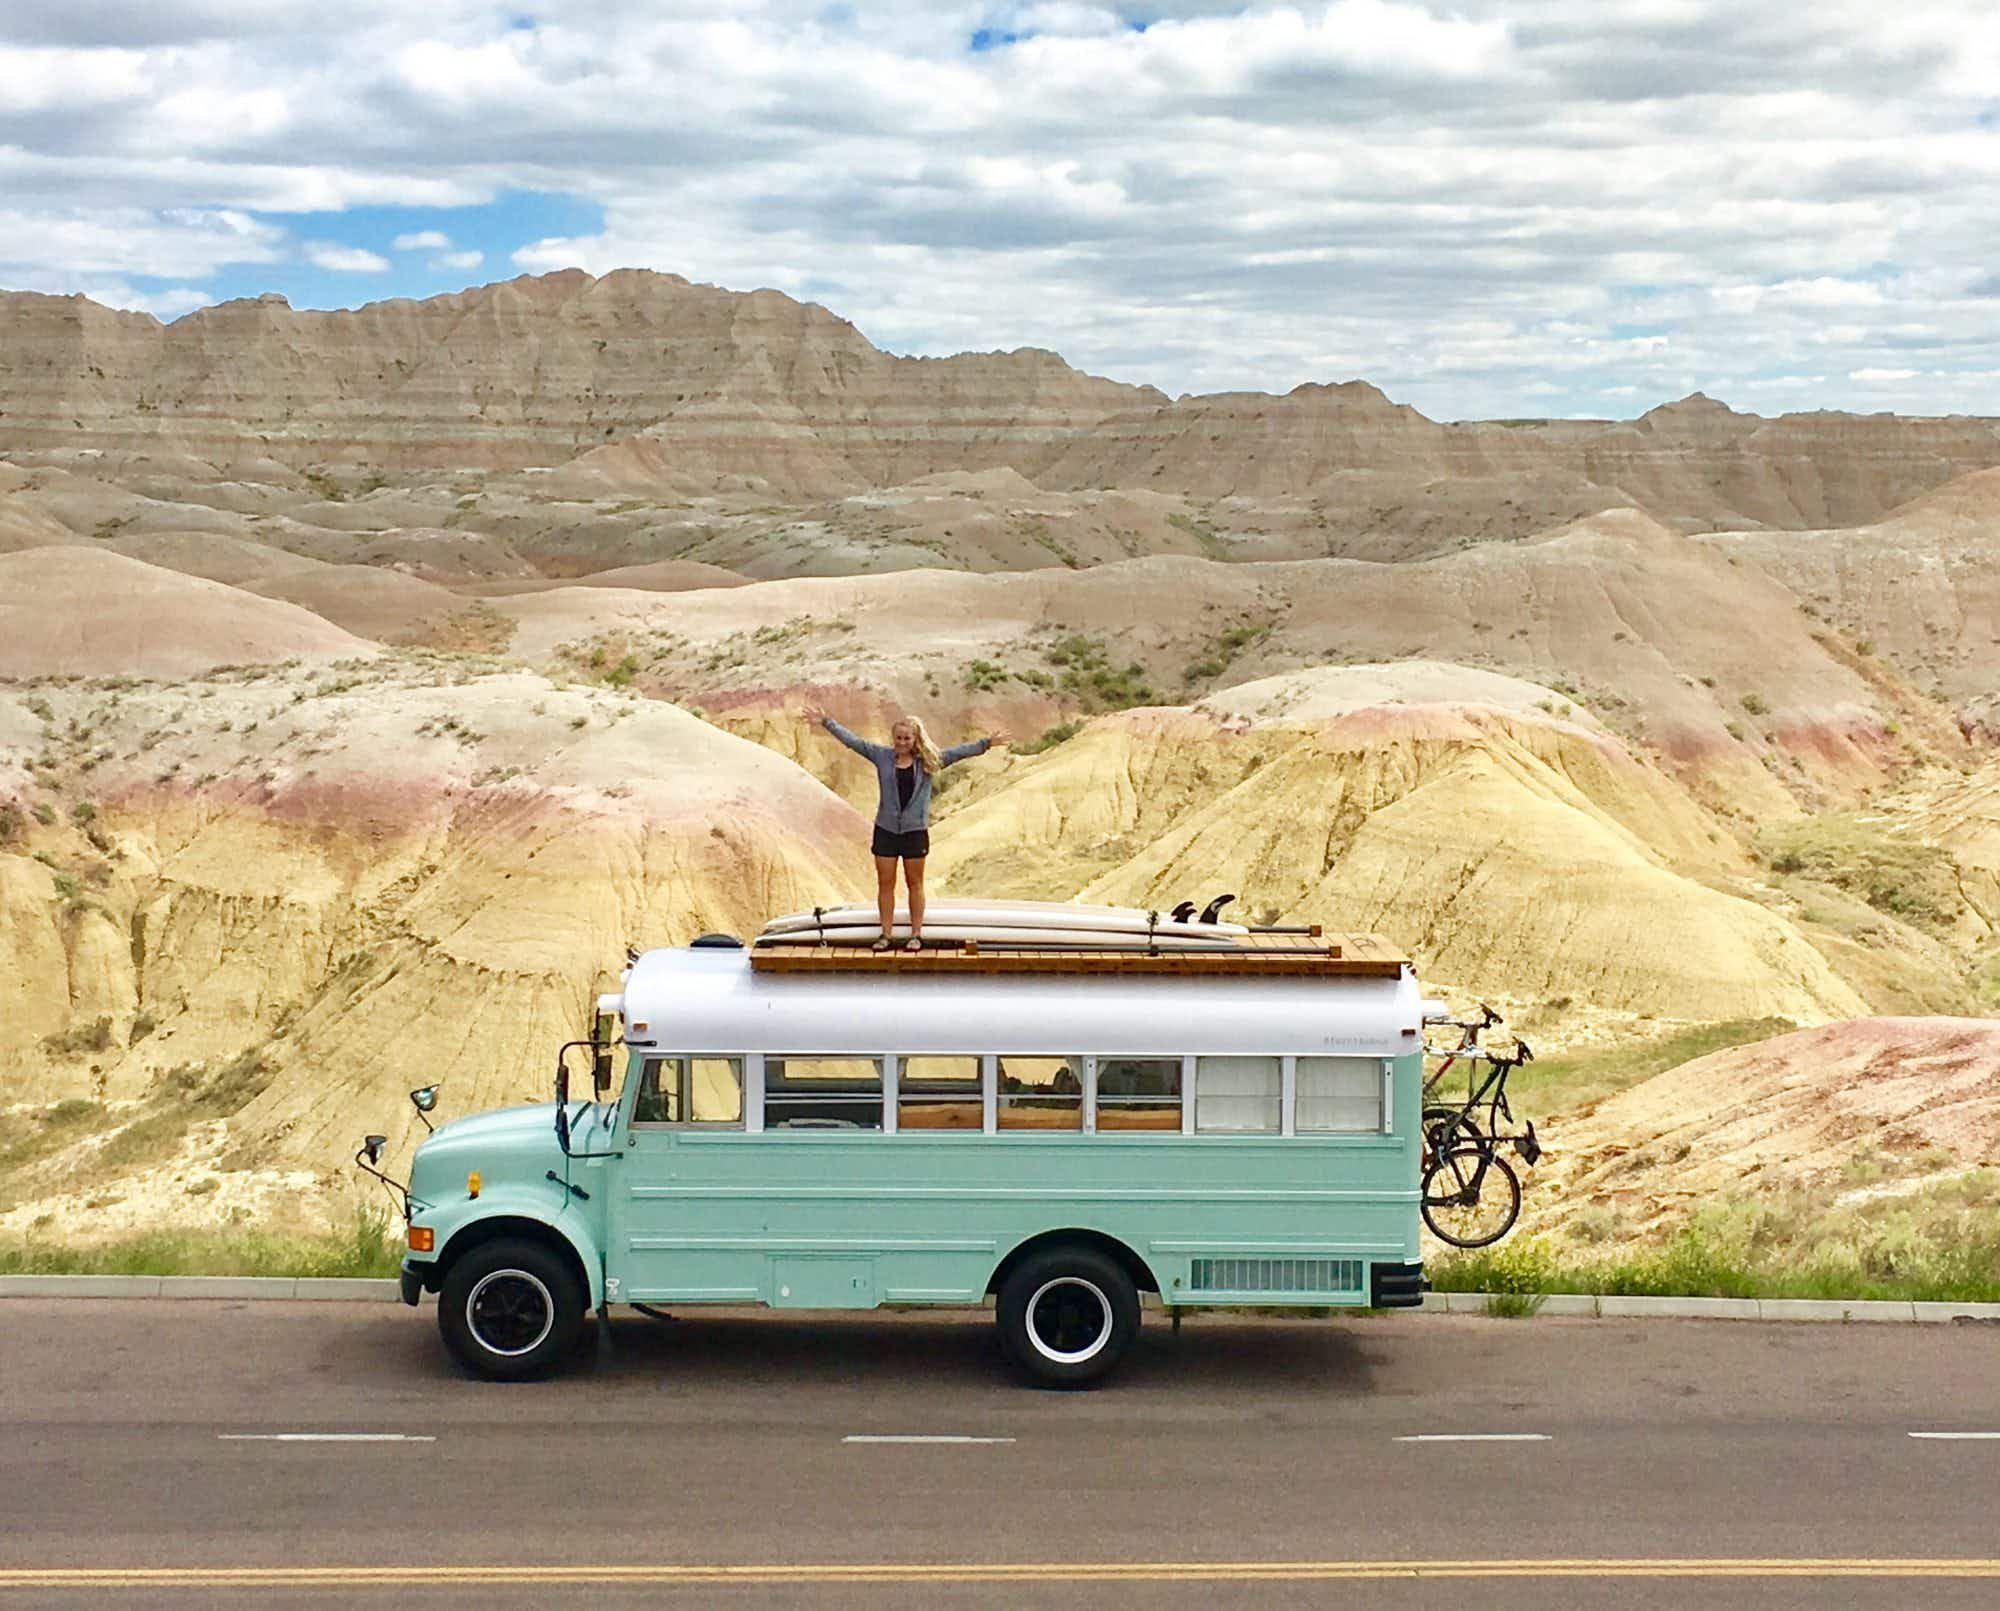 A 24-foot repurposed school bus is home for this couple travelling across America